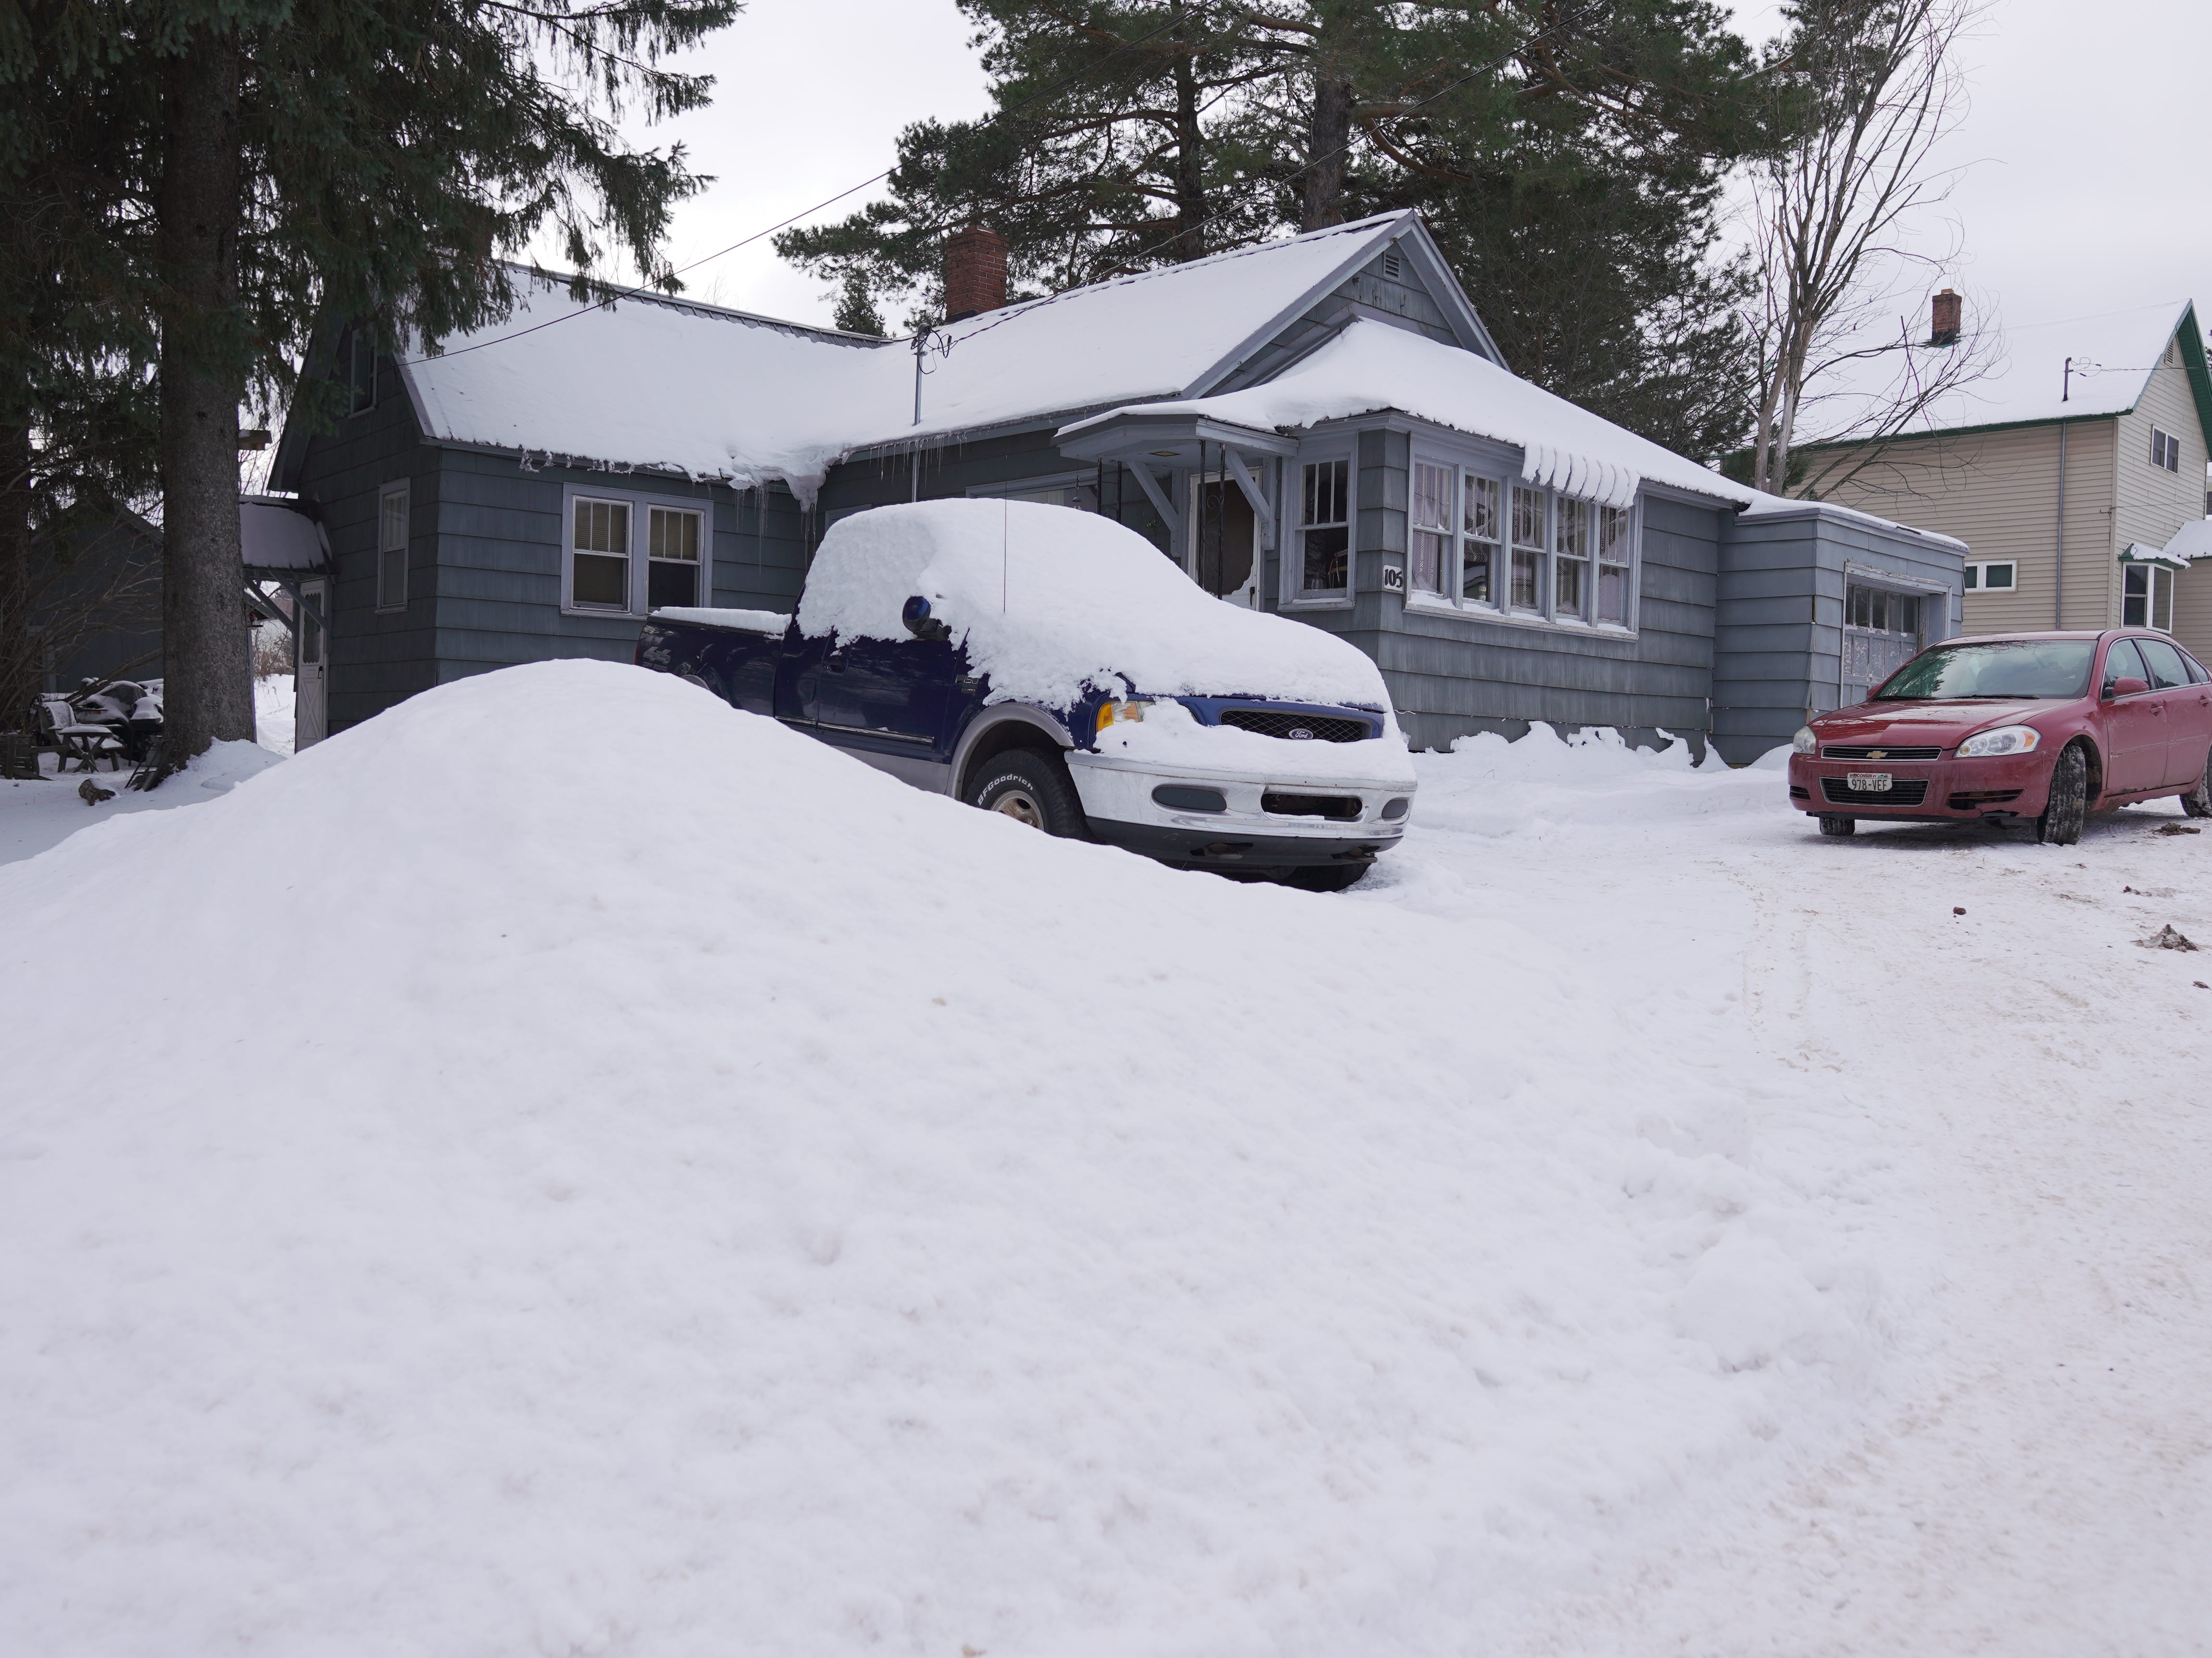 By mid-December, the northeastern Wisconsin town of Hurley had received over 40 inches of snow, while most of Wisconsin had none or a trace on the ground.